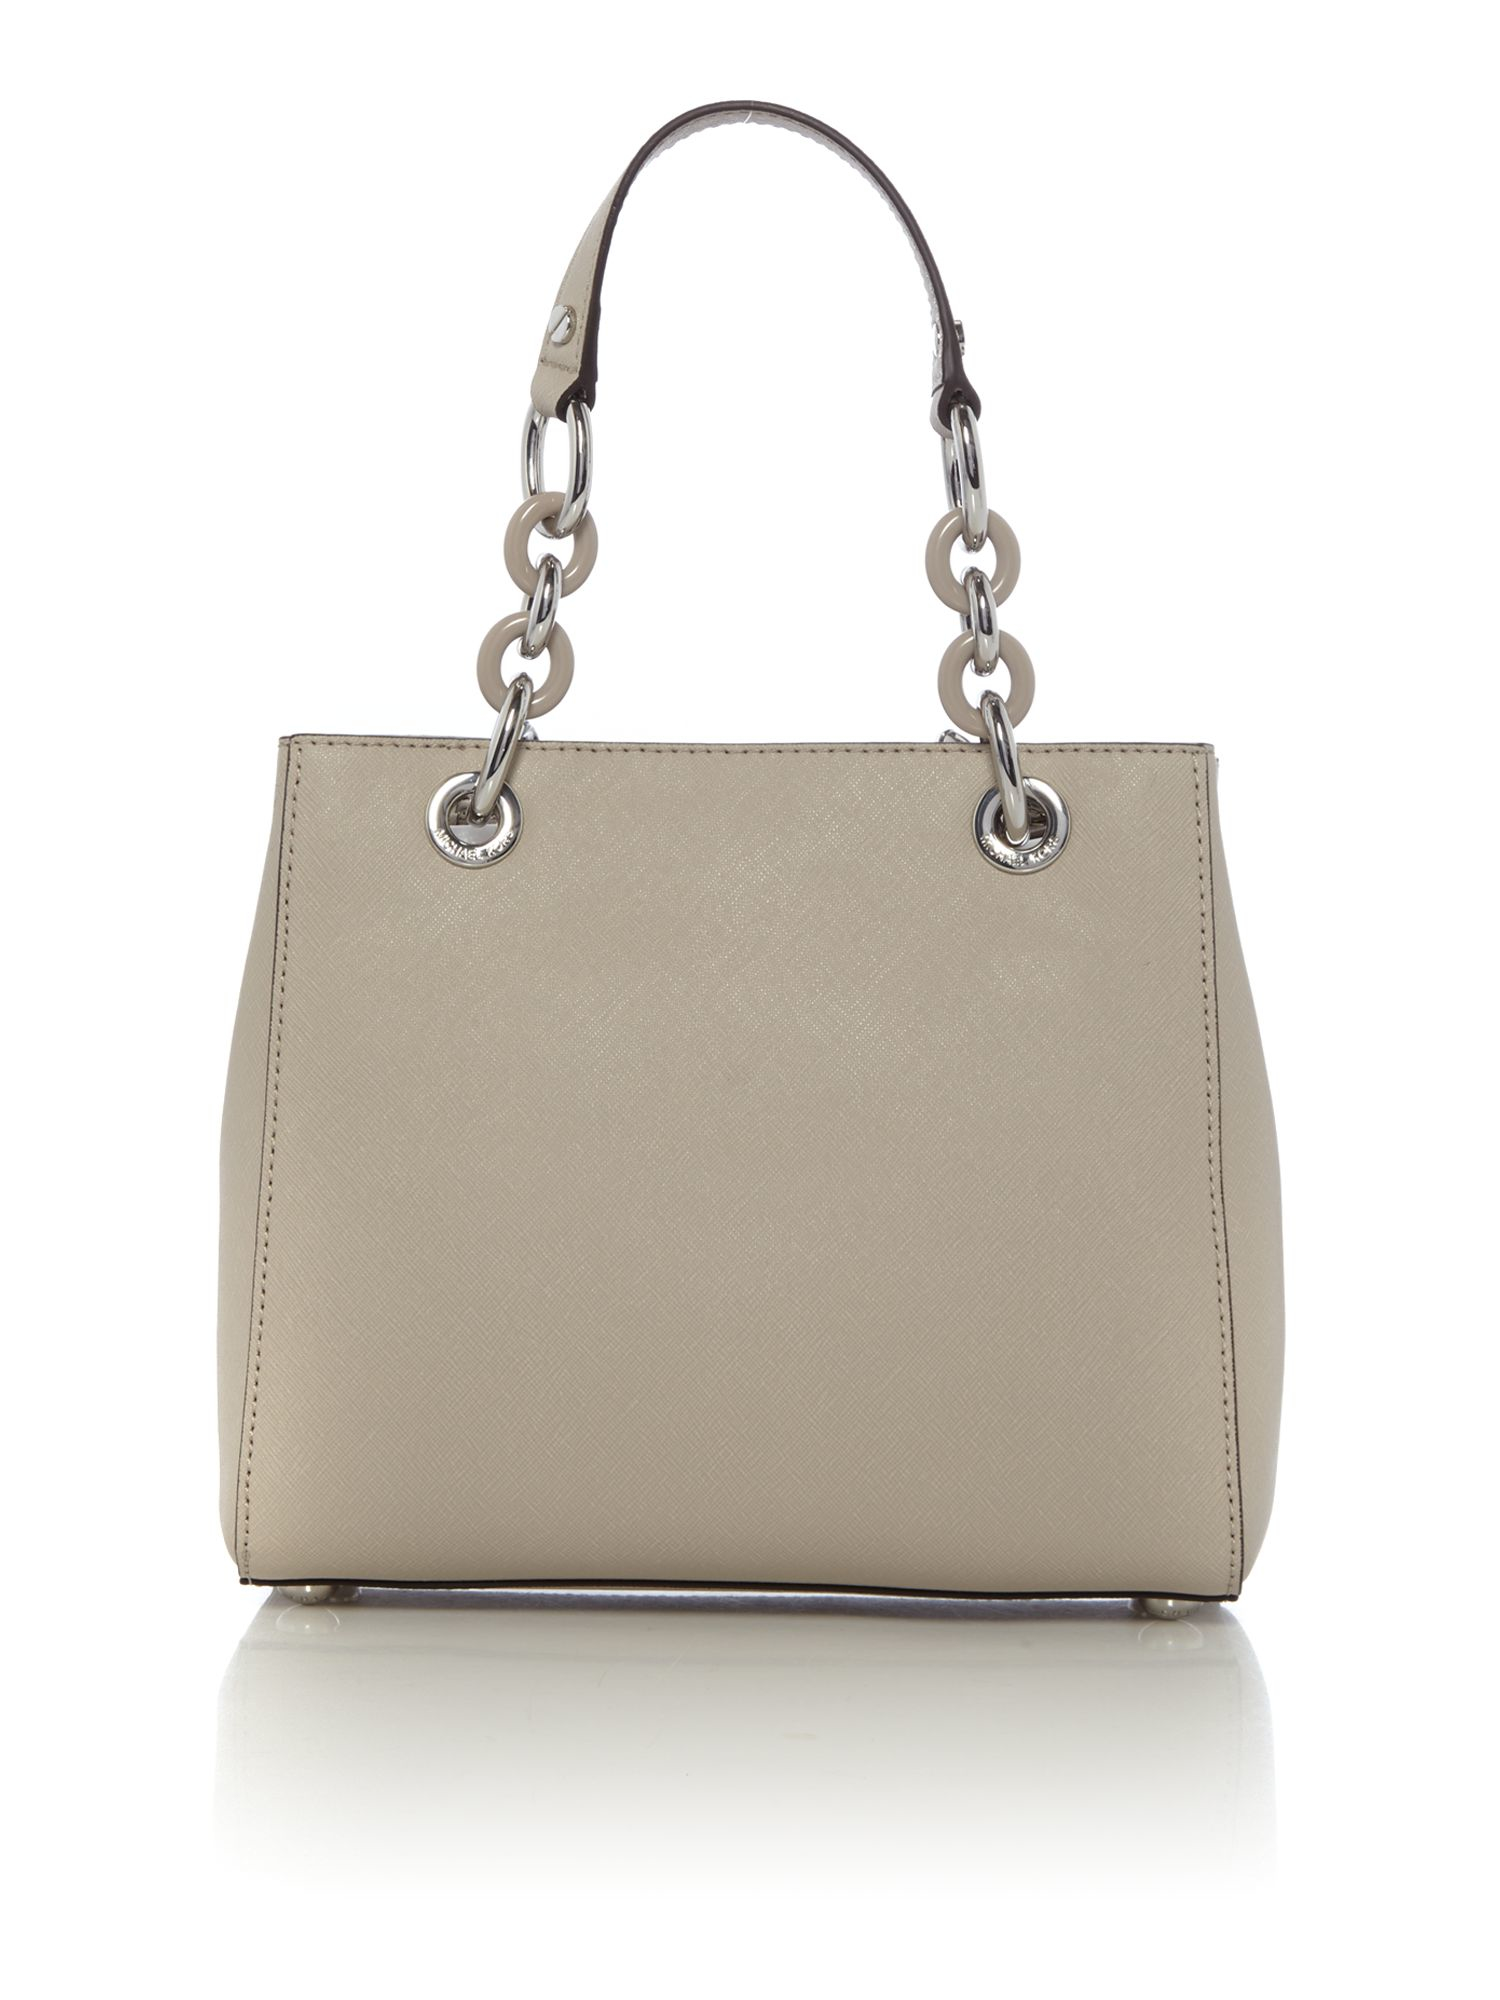 91e2be31050a Michael Kors Small Grey Tote Bag | Stanford Center for Opportunity ...